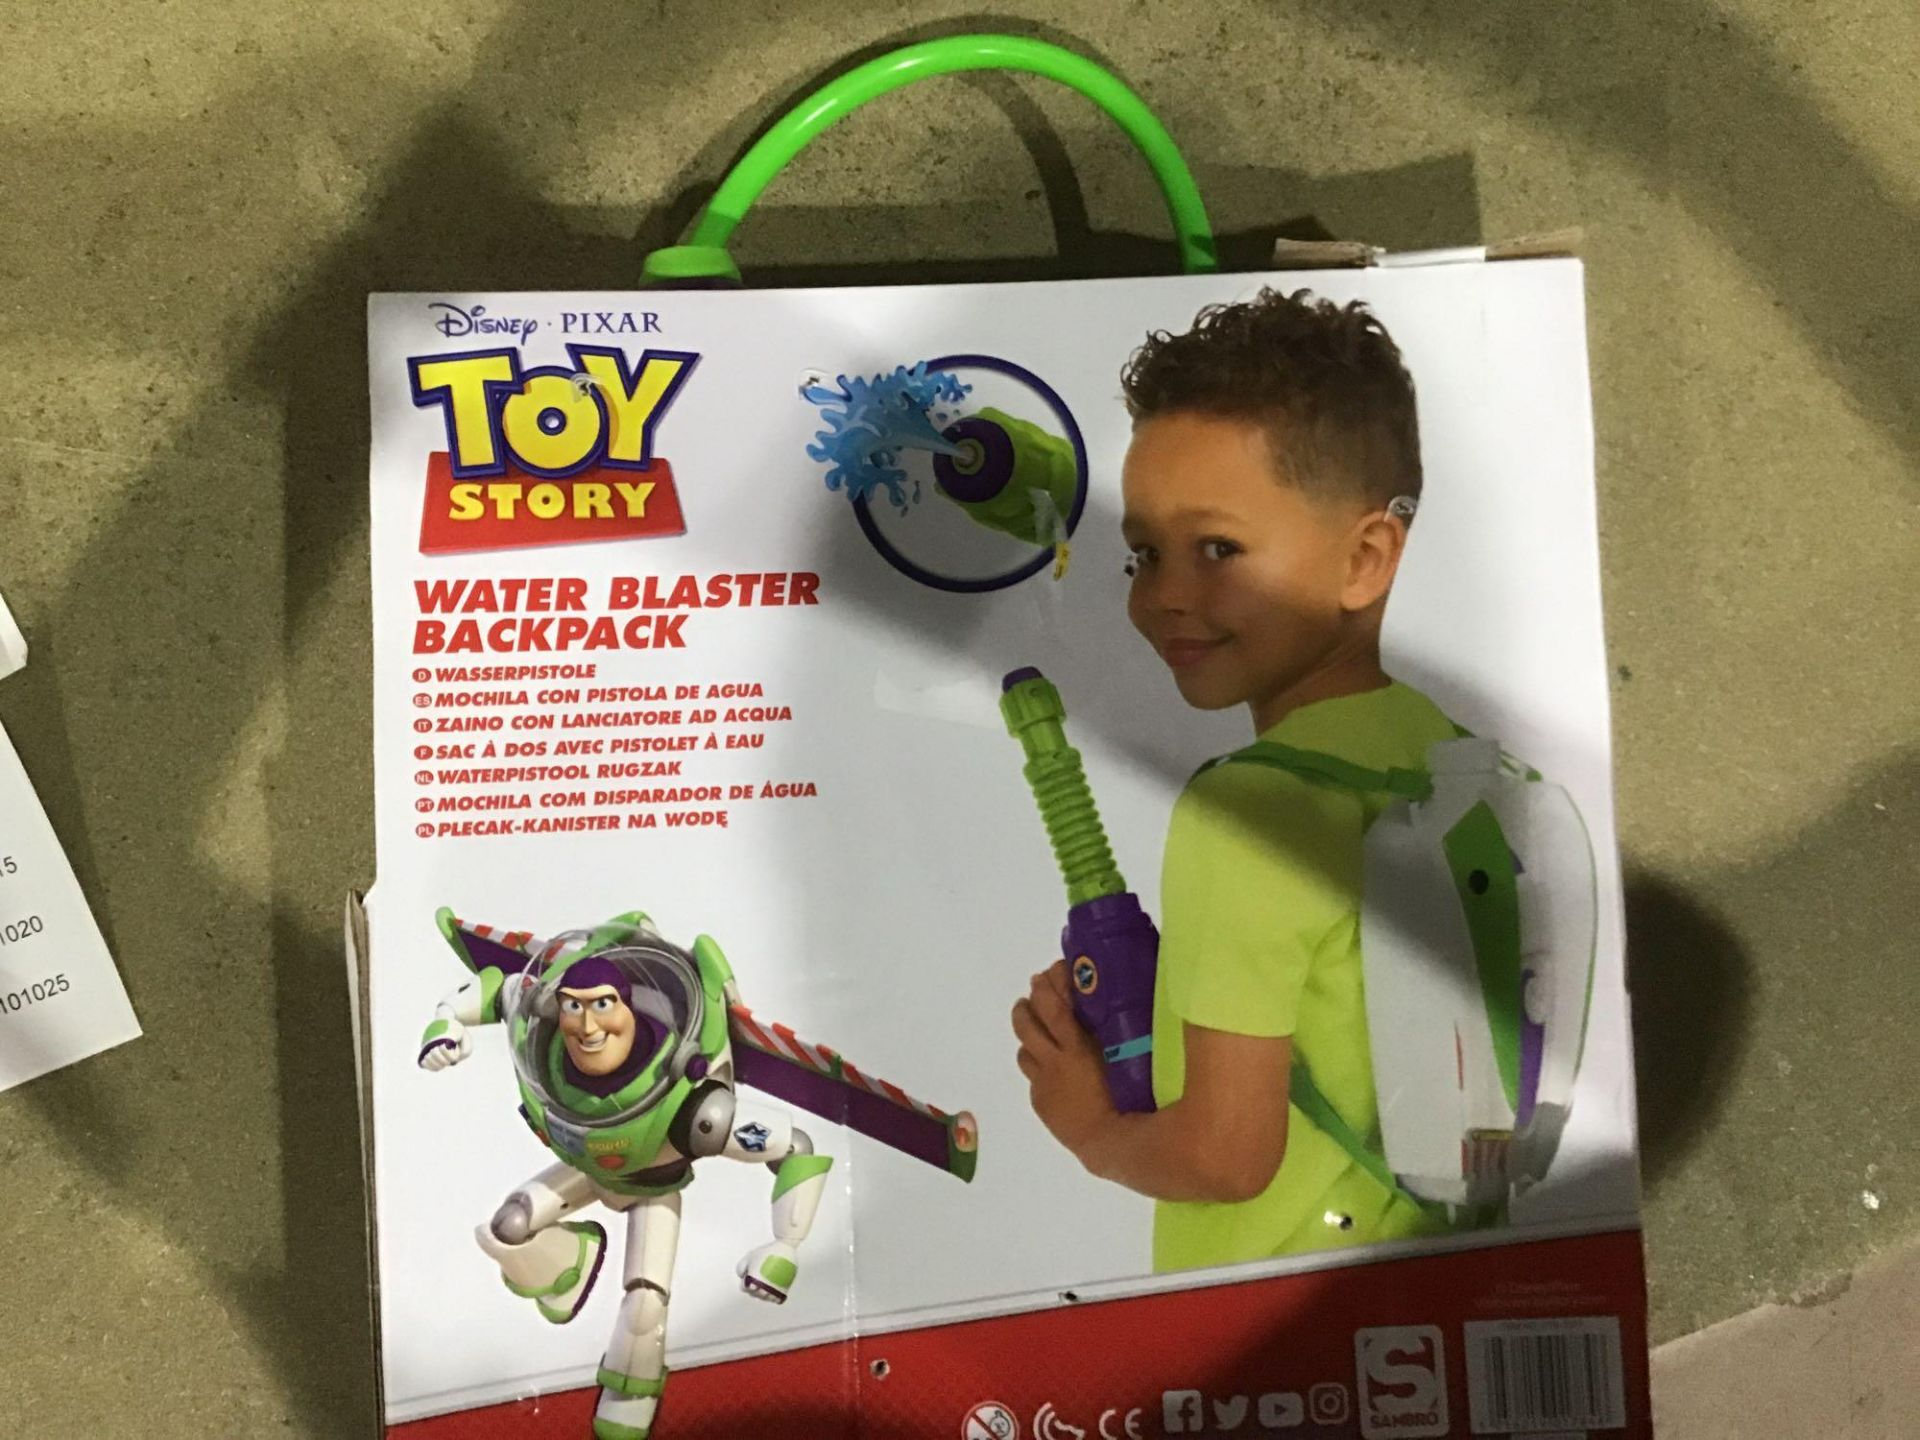 Disney Toy Story Buzz Lightyear Water Blaster Backpack, £10.00 RRP - Image 2 of 4